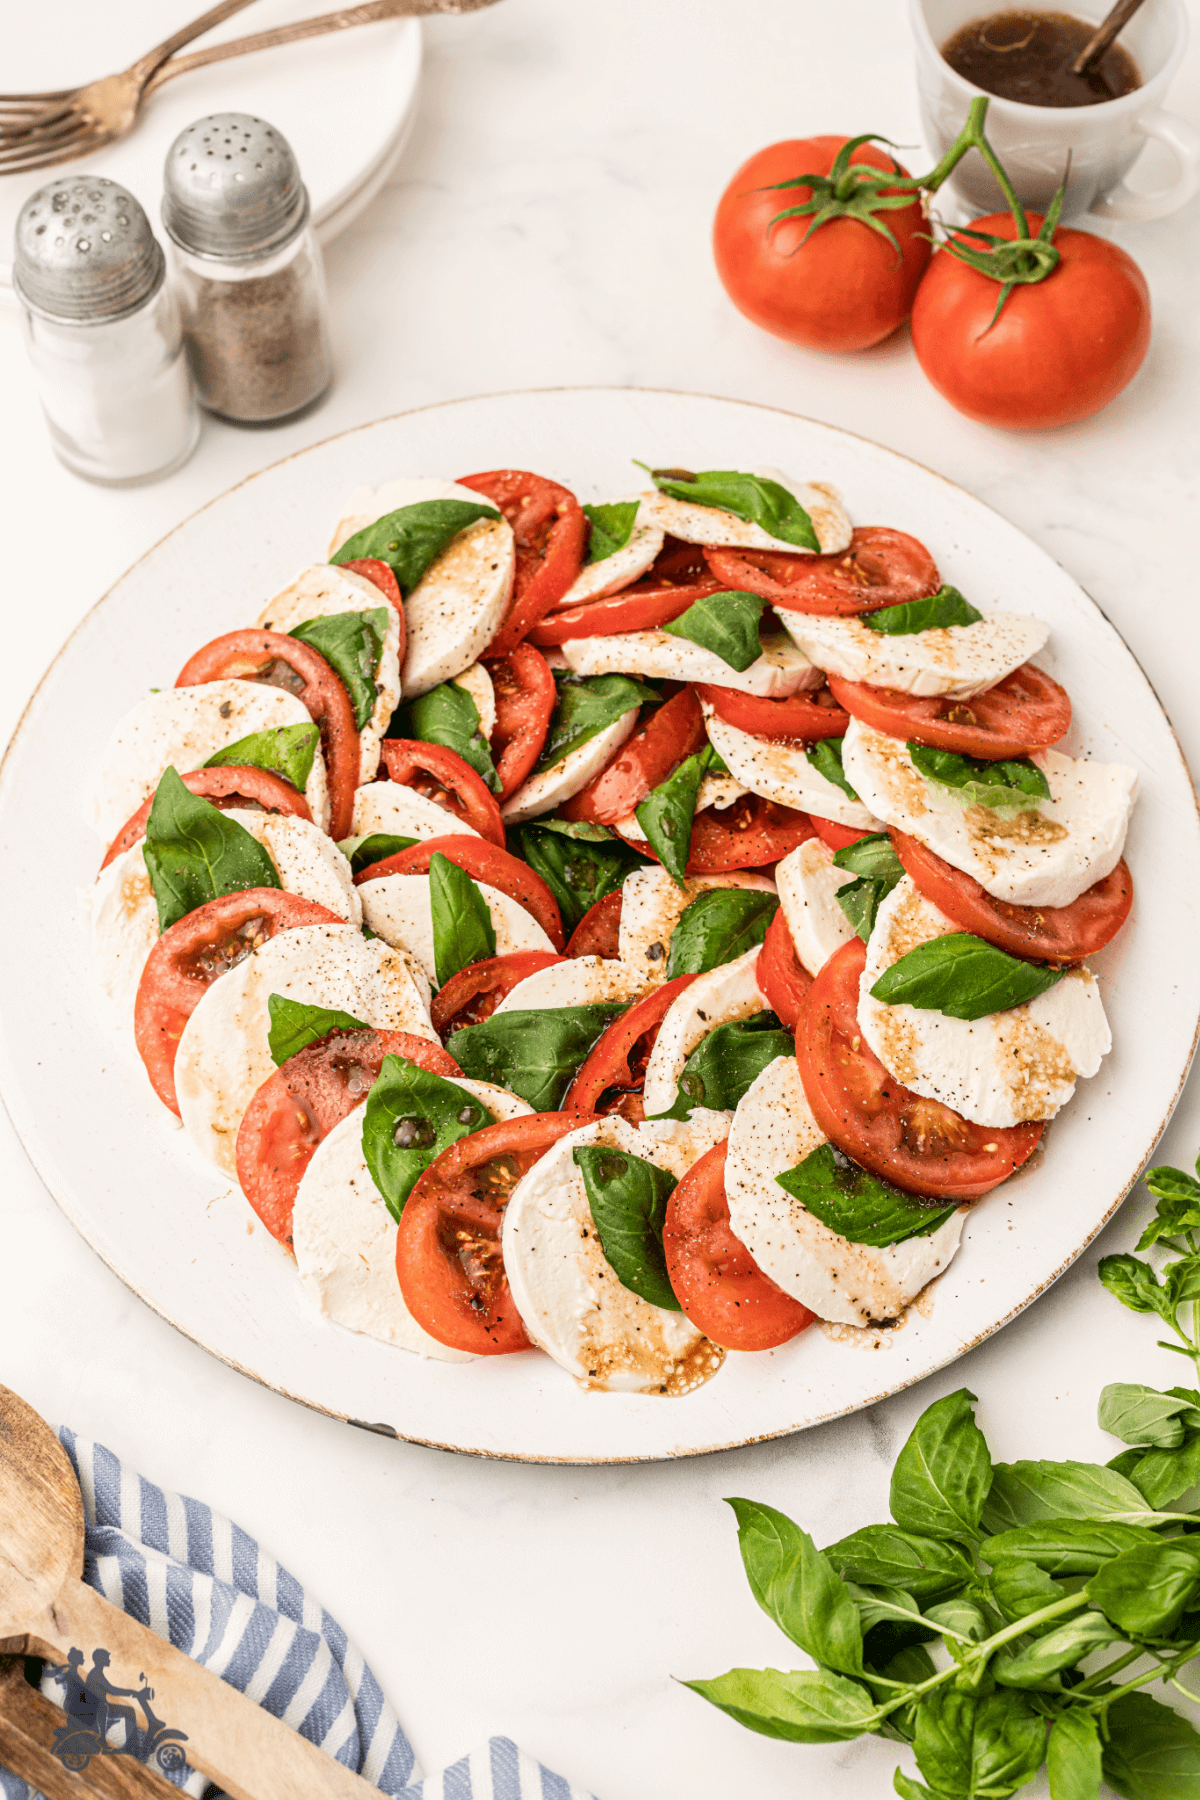 A Caprese Salad on a white platter with the tomatoes, mozzarella, and basil leaves layered in a circle.